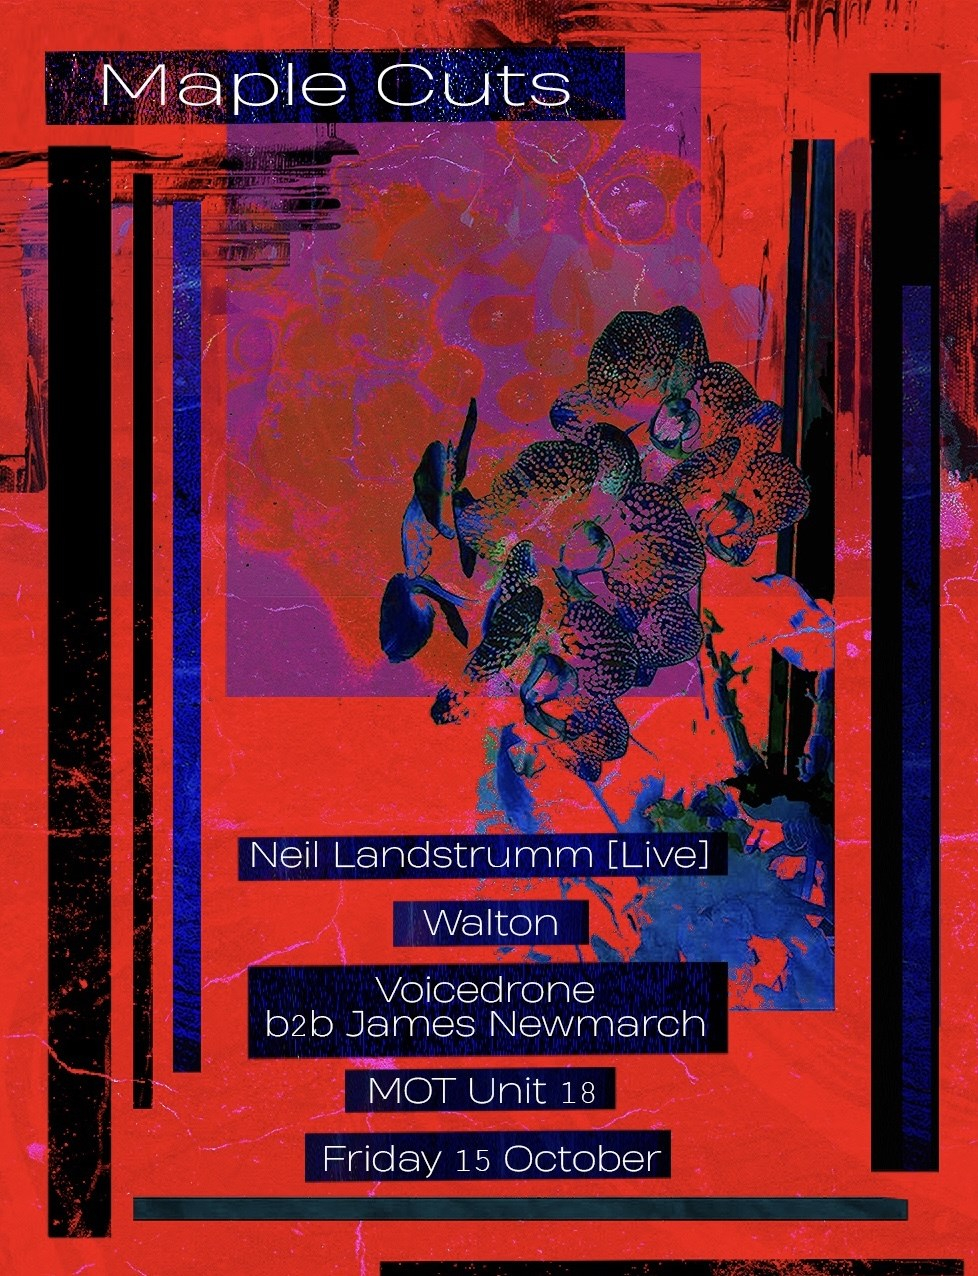 Maple Cuts with Neil Landstrumm, Walton, Voicedrone b2b James Newmarch - Flyer front